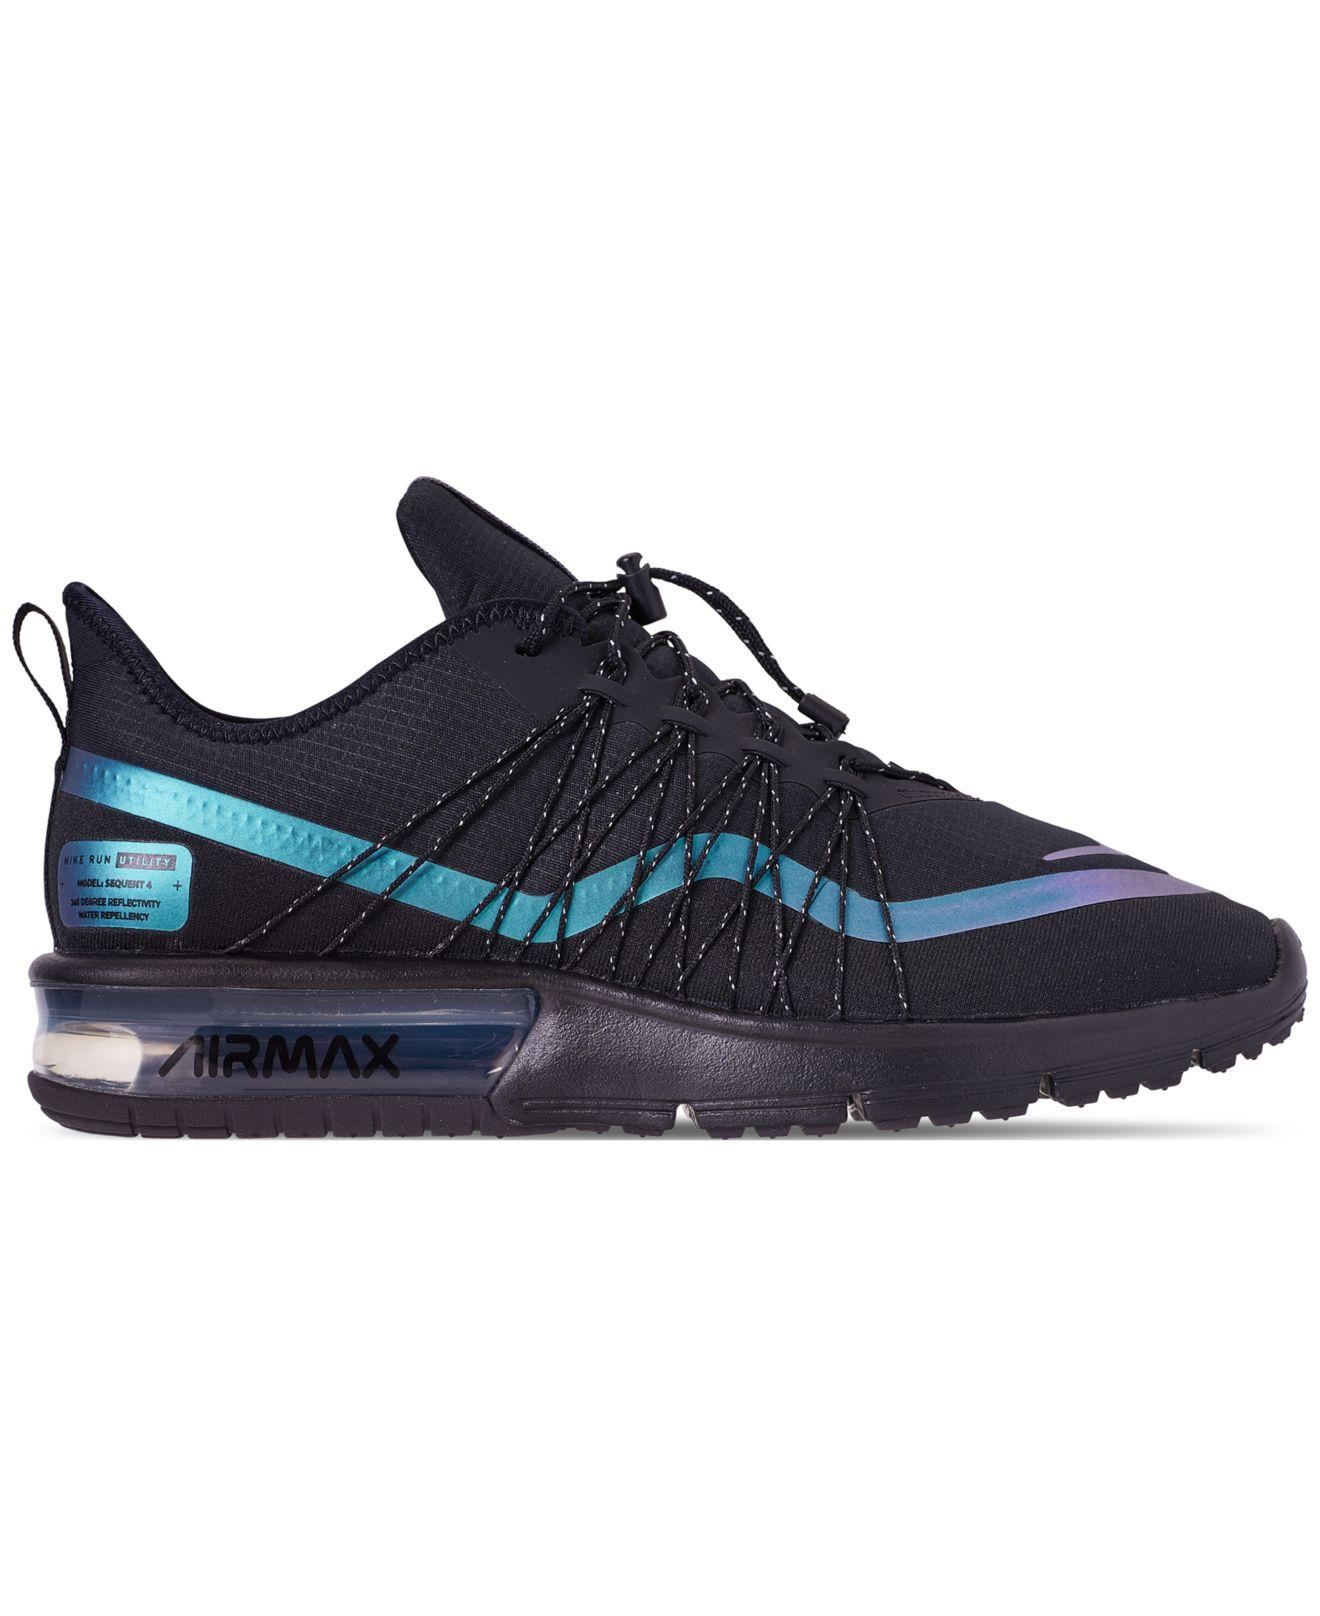 9c8296803310 Lyst - Nike Men s Air Max Sequent 4 Shield Low-top Sneakers in Black for Men  - Save 23%